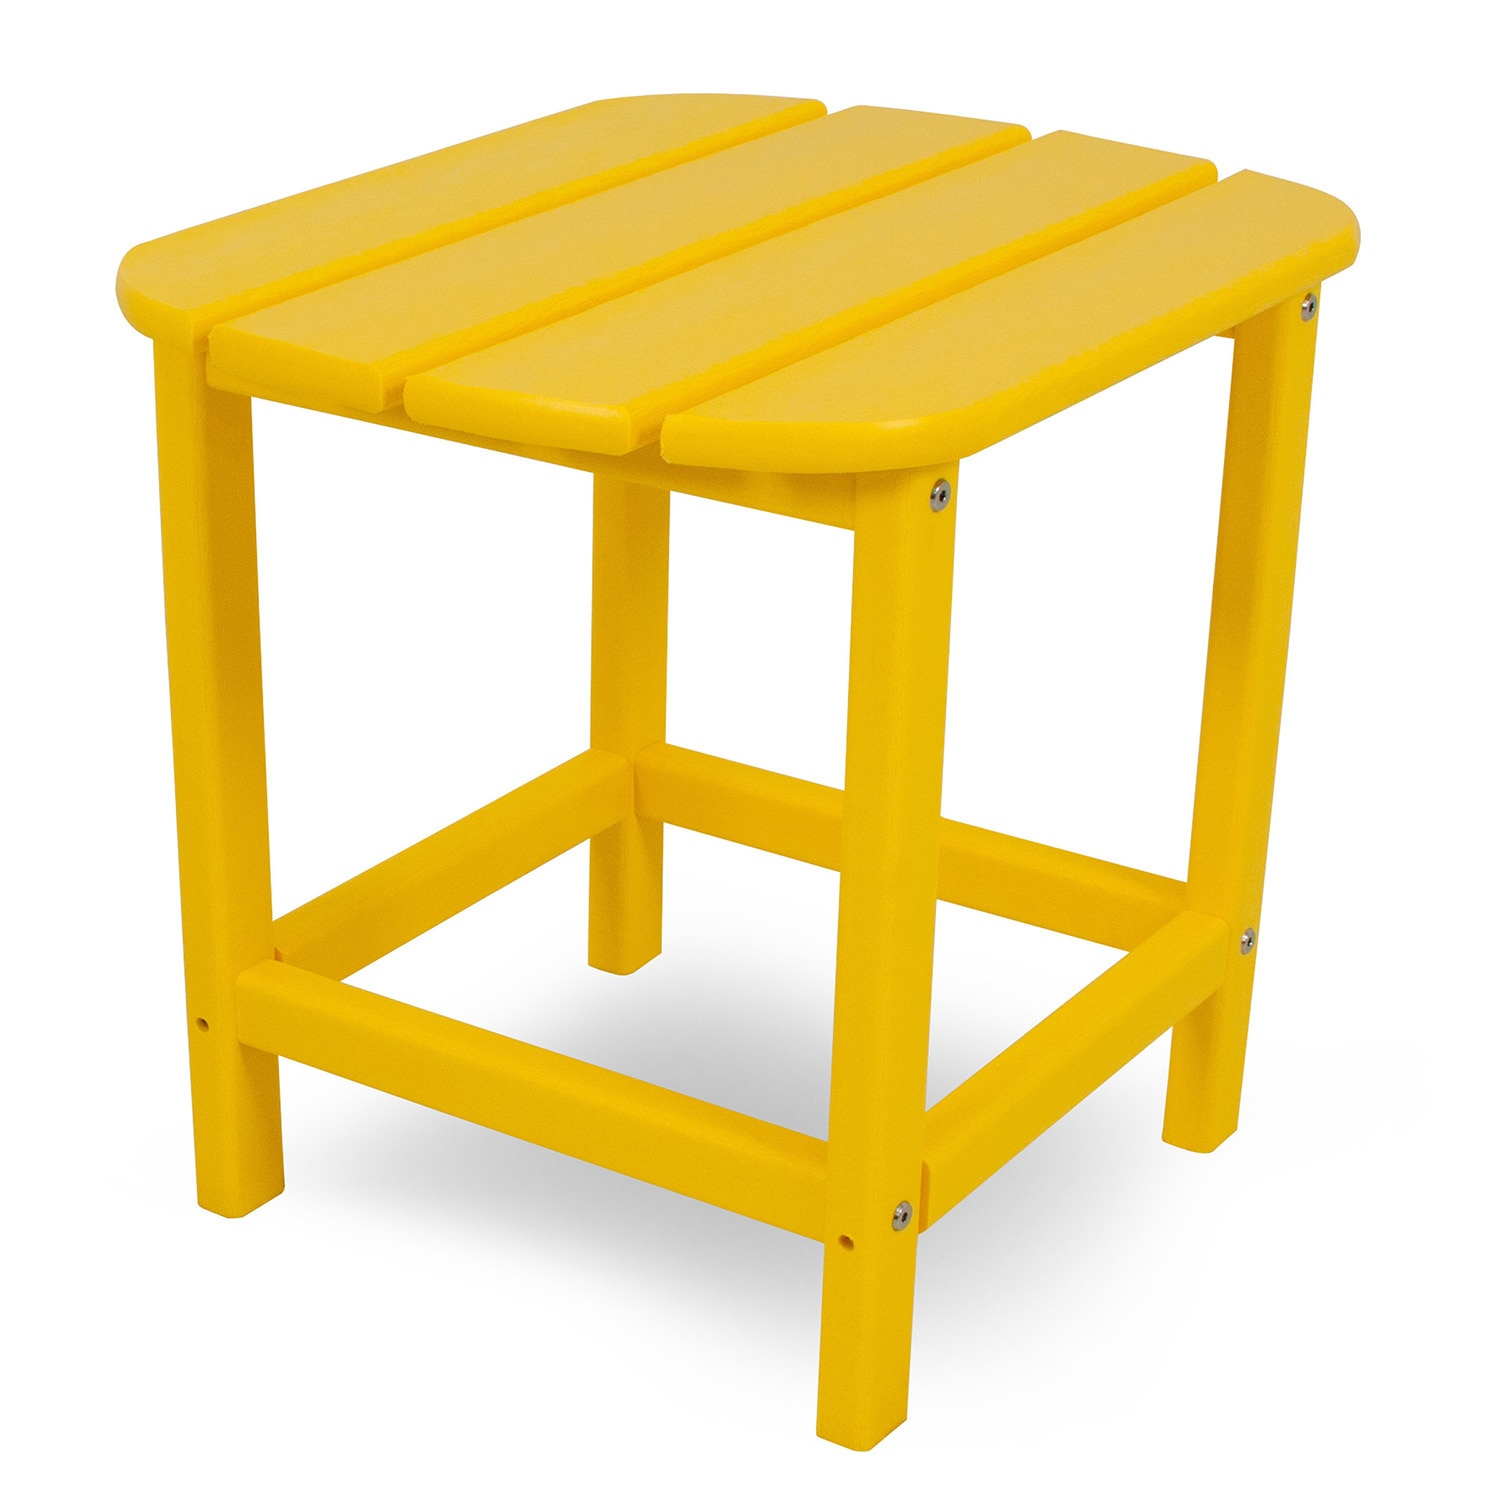 polywood south beach inch outdoor side table pacific blue yellow accent lemon patio furniture shaped office desk ikea lamp shades reclaimed wood round porch small lounge